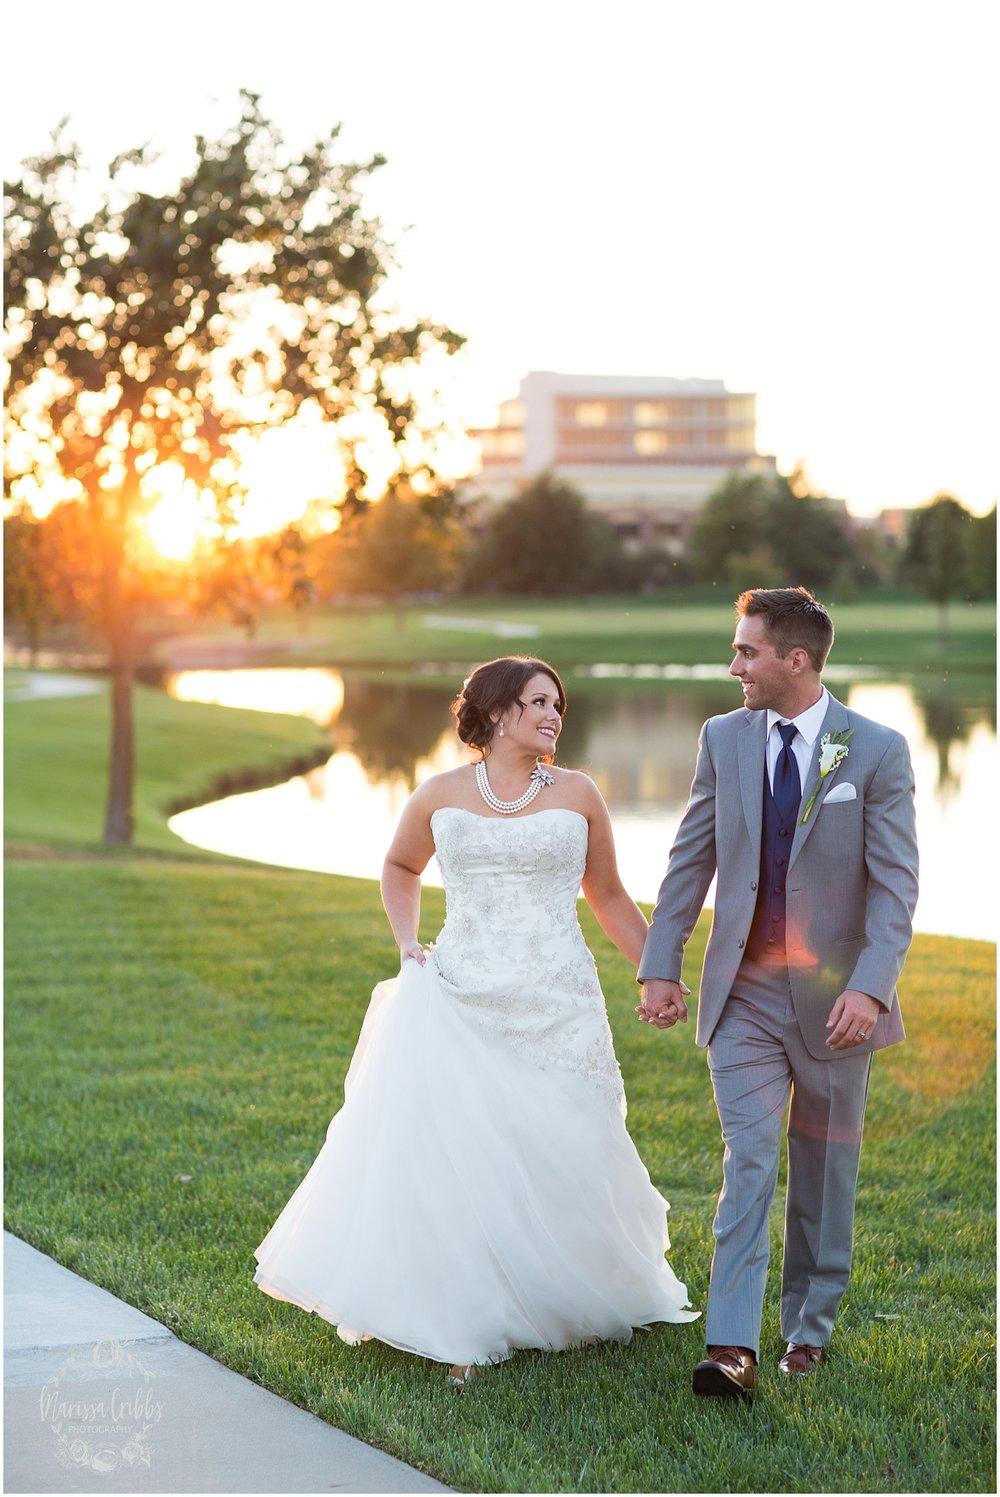 Sarah & Troy | Wichita KS Wedding Photography | Noah's Event Venue Wichita | Marissa Cribbs Photography_1045.jpg